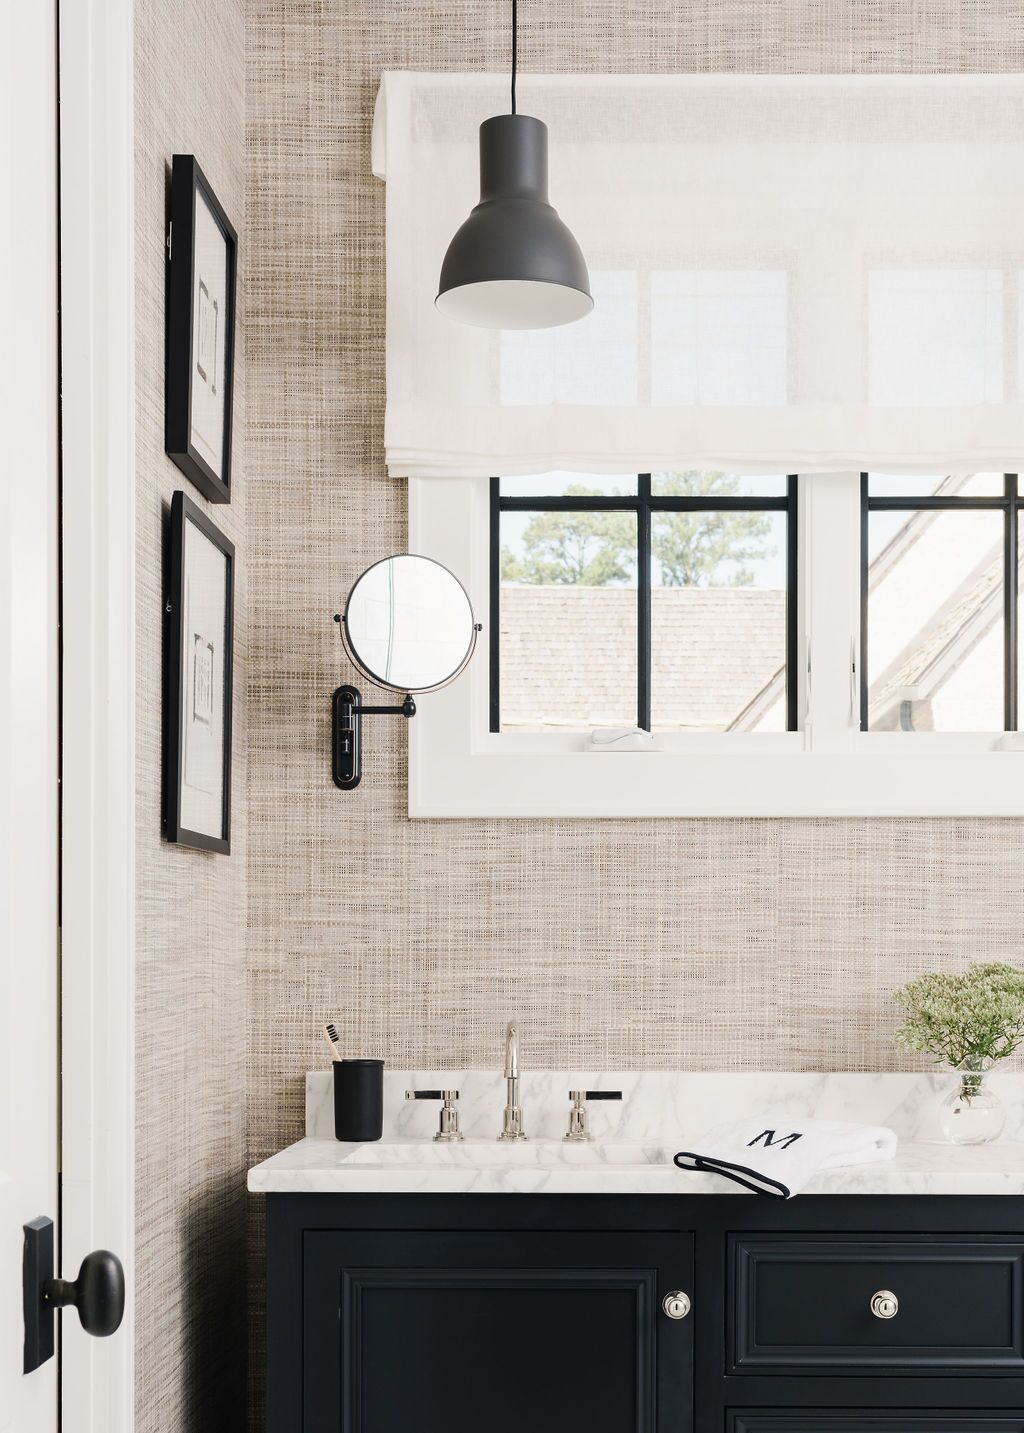 Black And White Neutral Bathroom Design With Grasscloth Wallpaper By Coley Cuttino Interiors Neutral Bathroom Decor Neutral Bathrooms Designs Neutral Bathroom